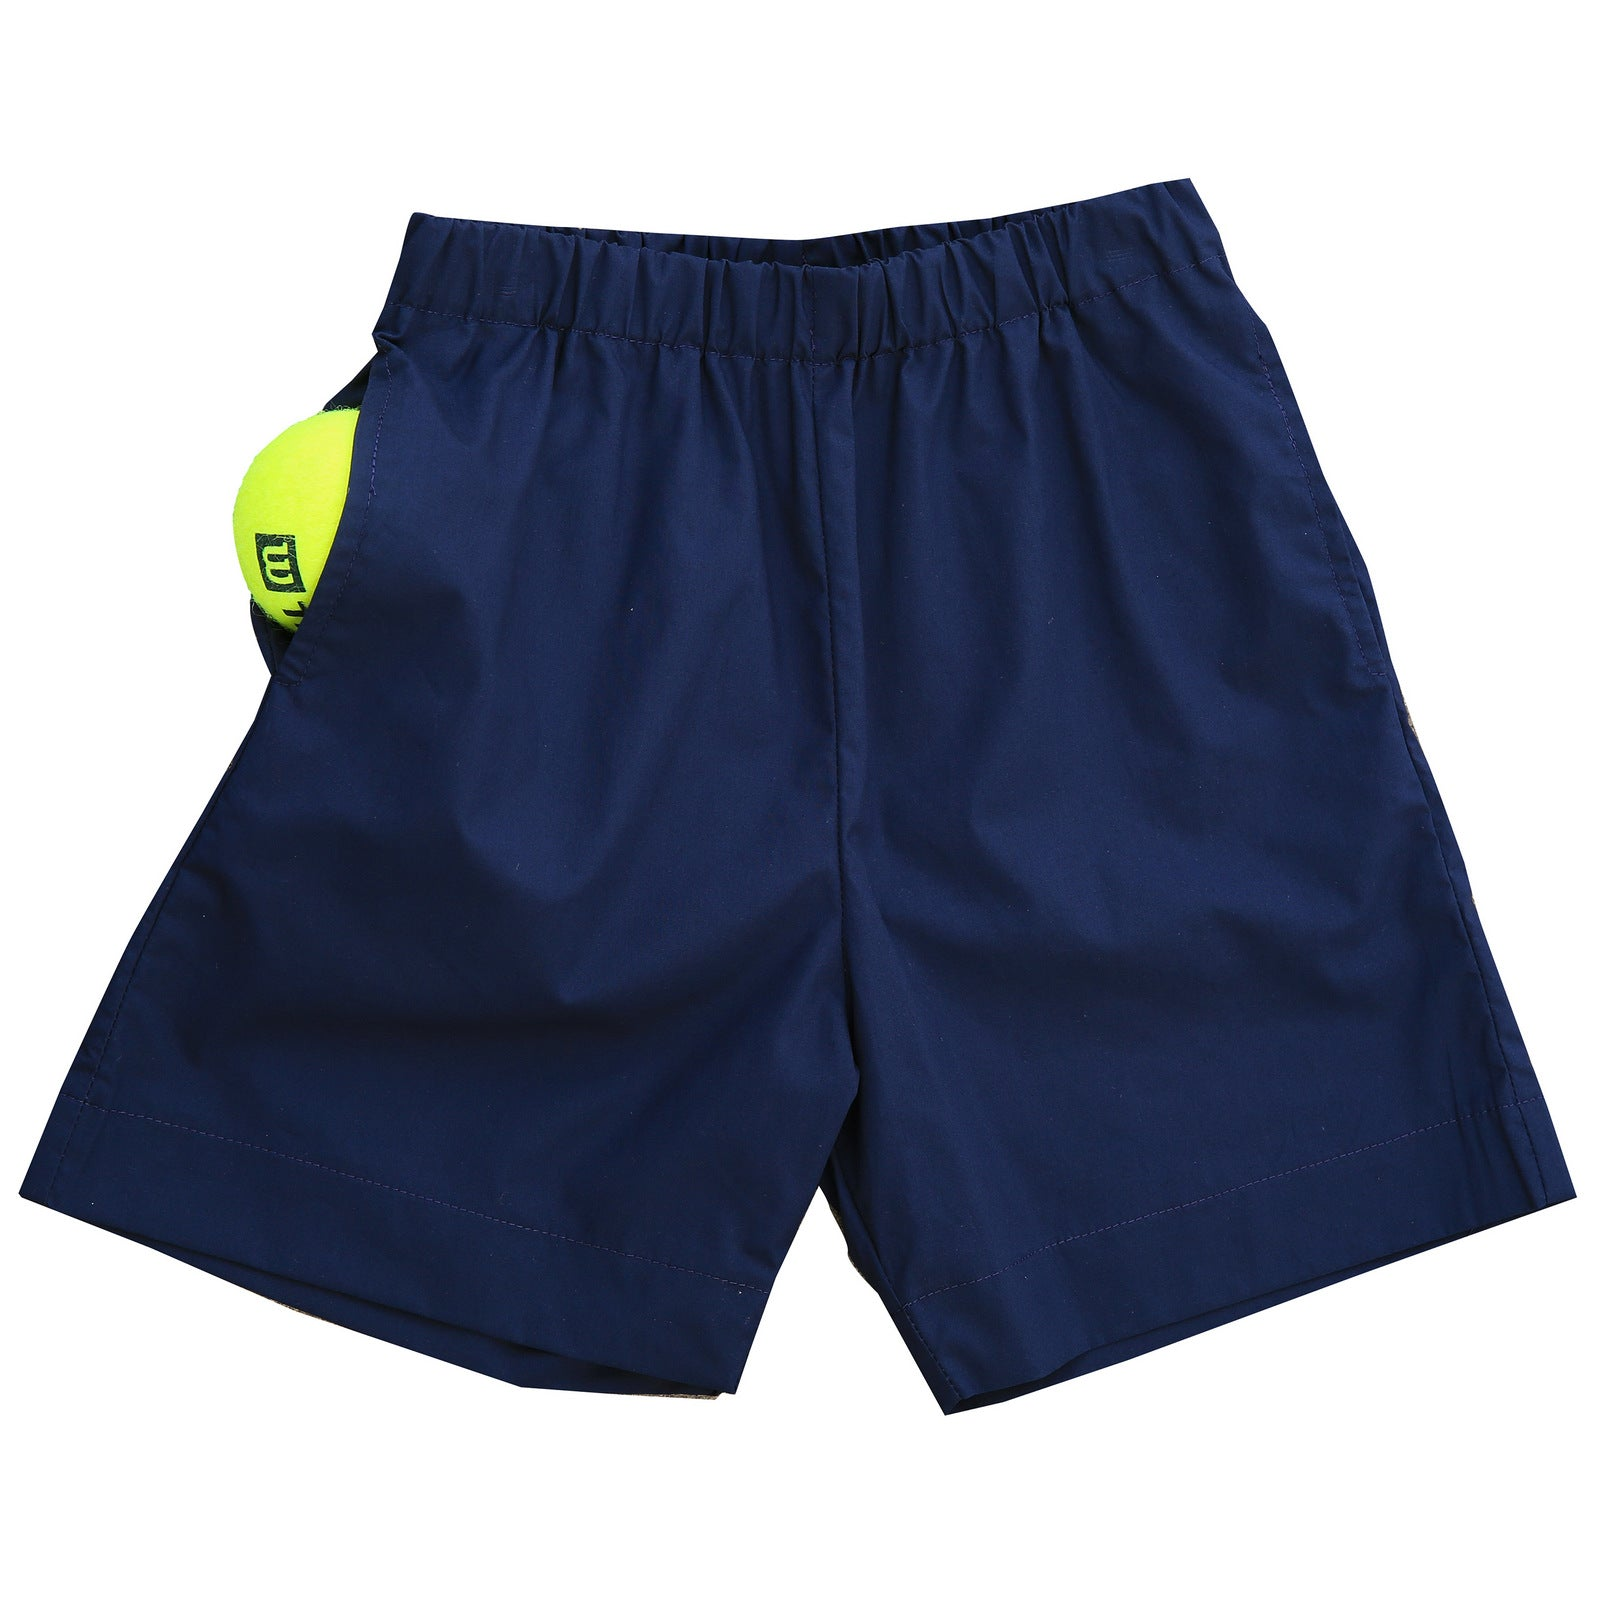 boys performance shorts navy